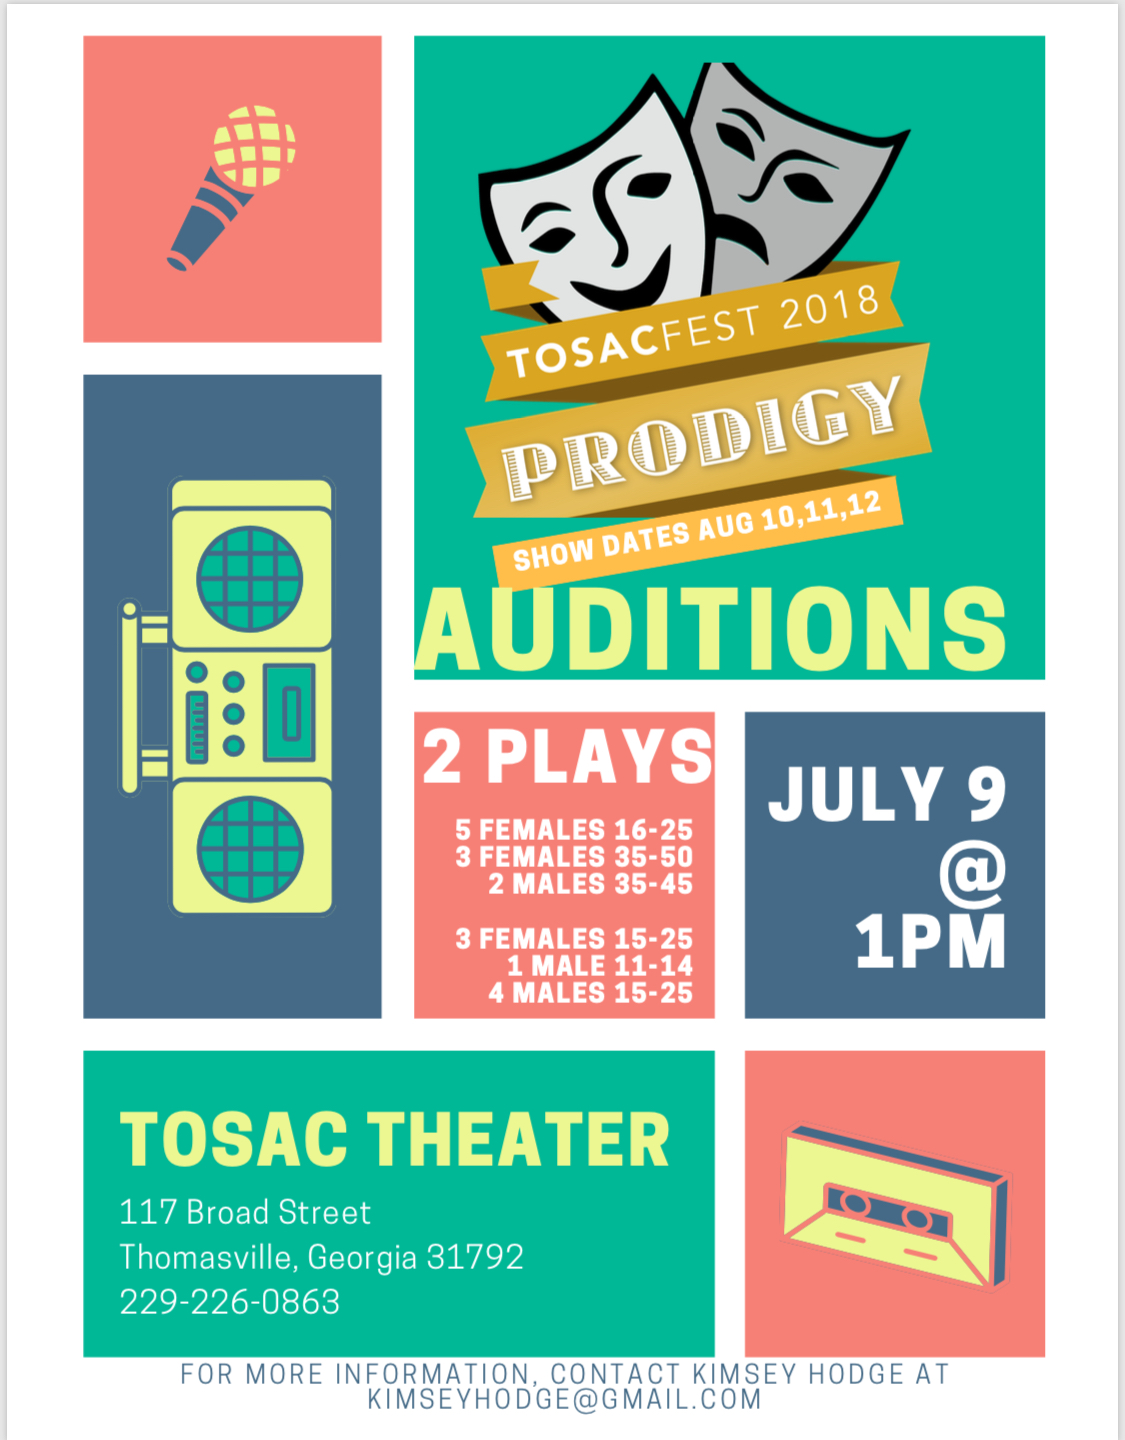 tosacfest auditions